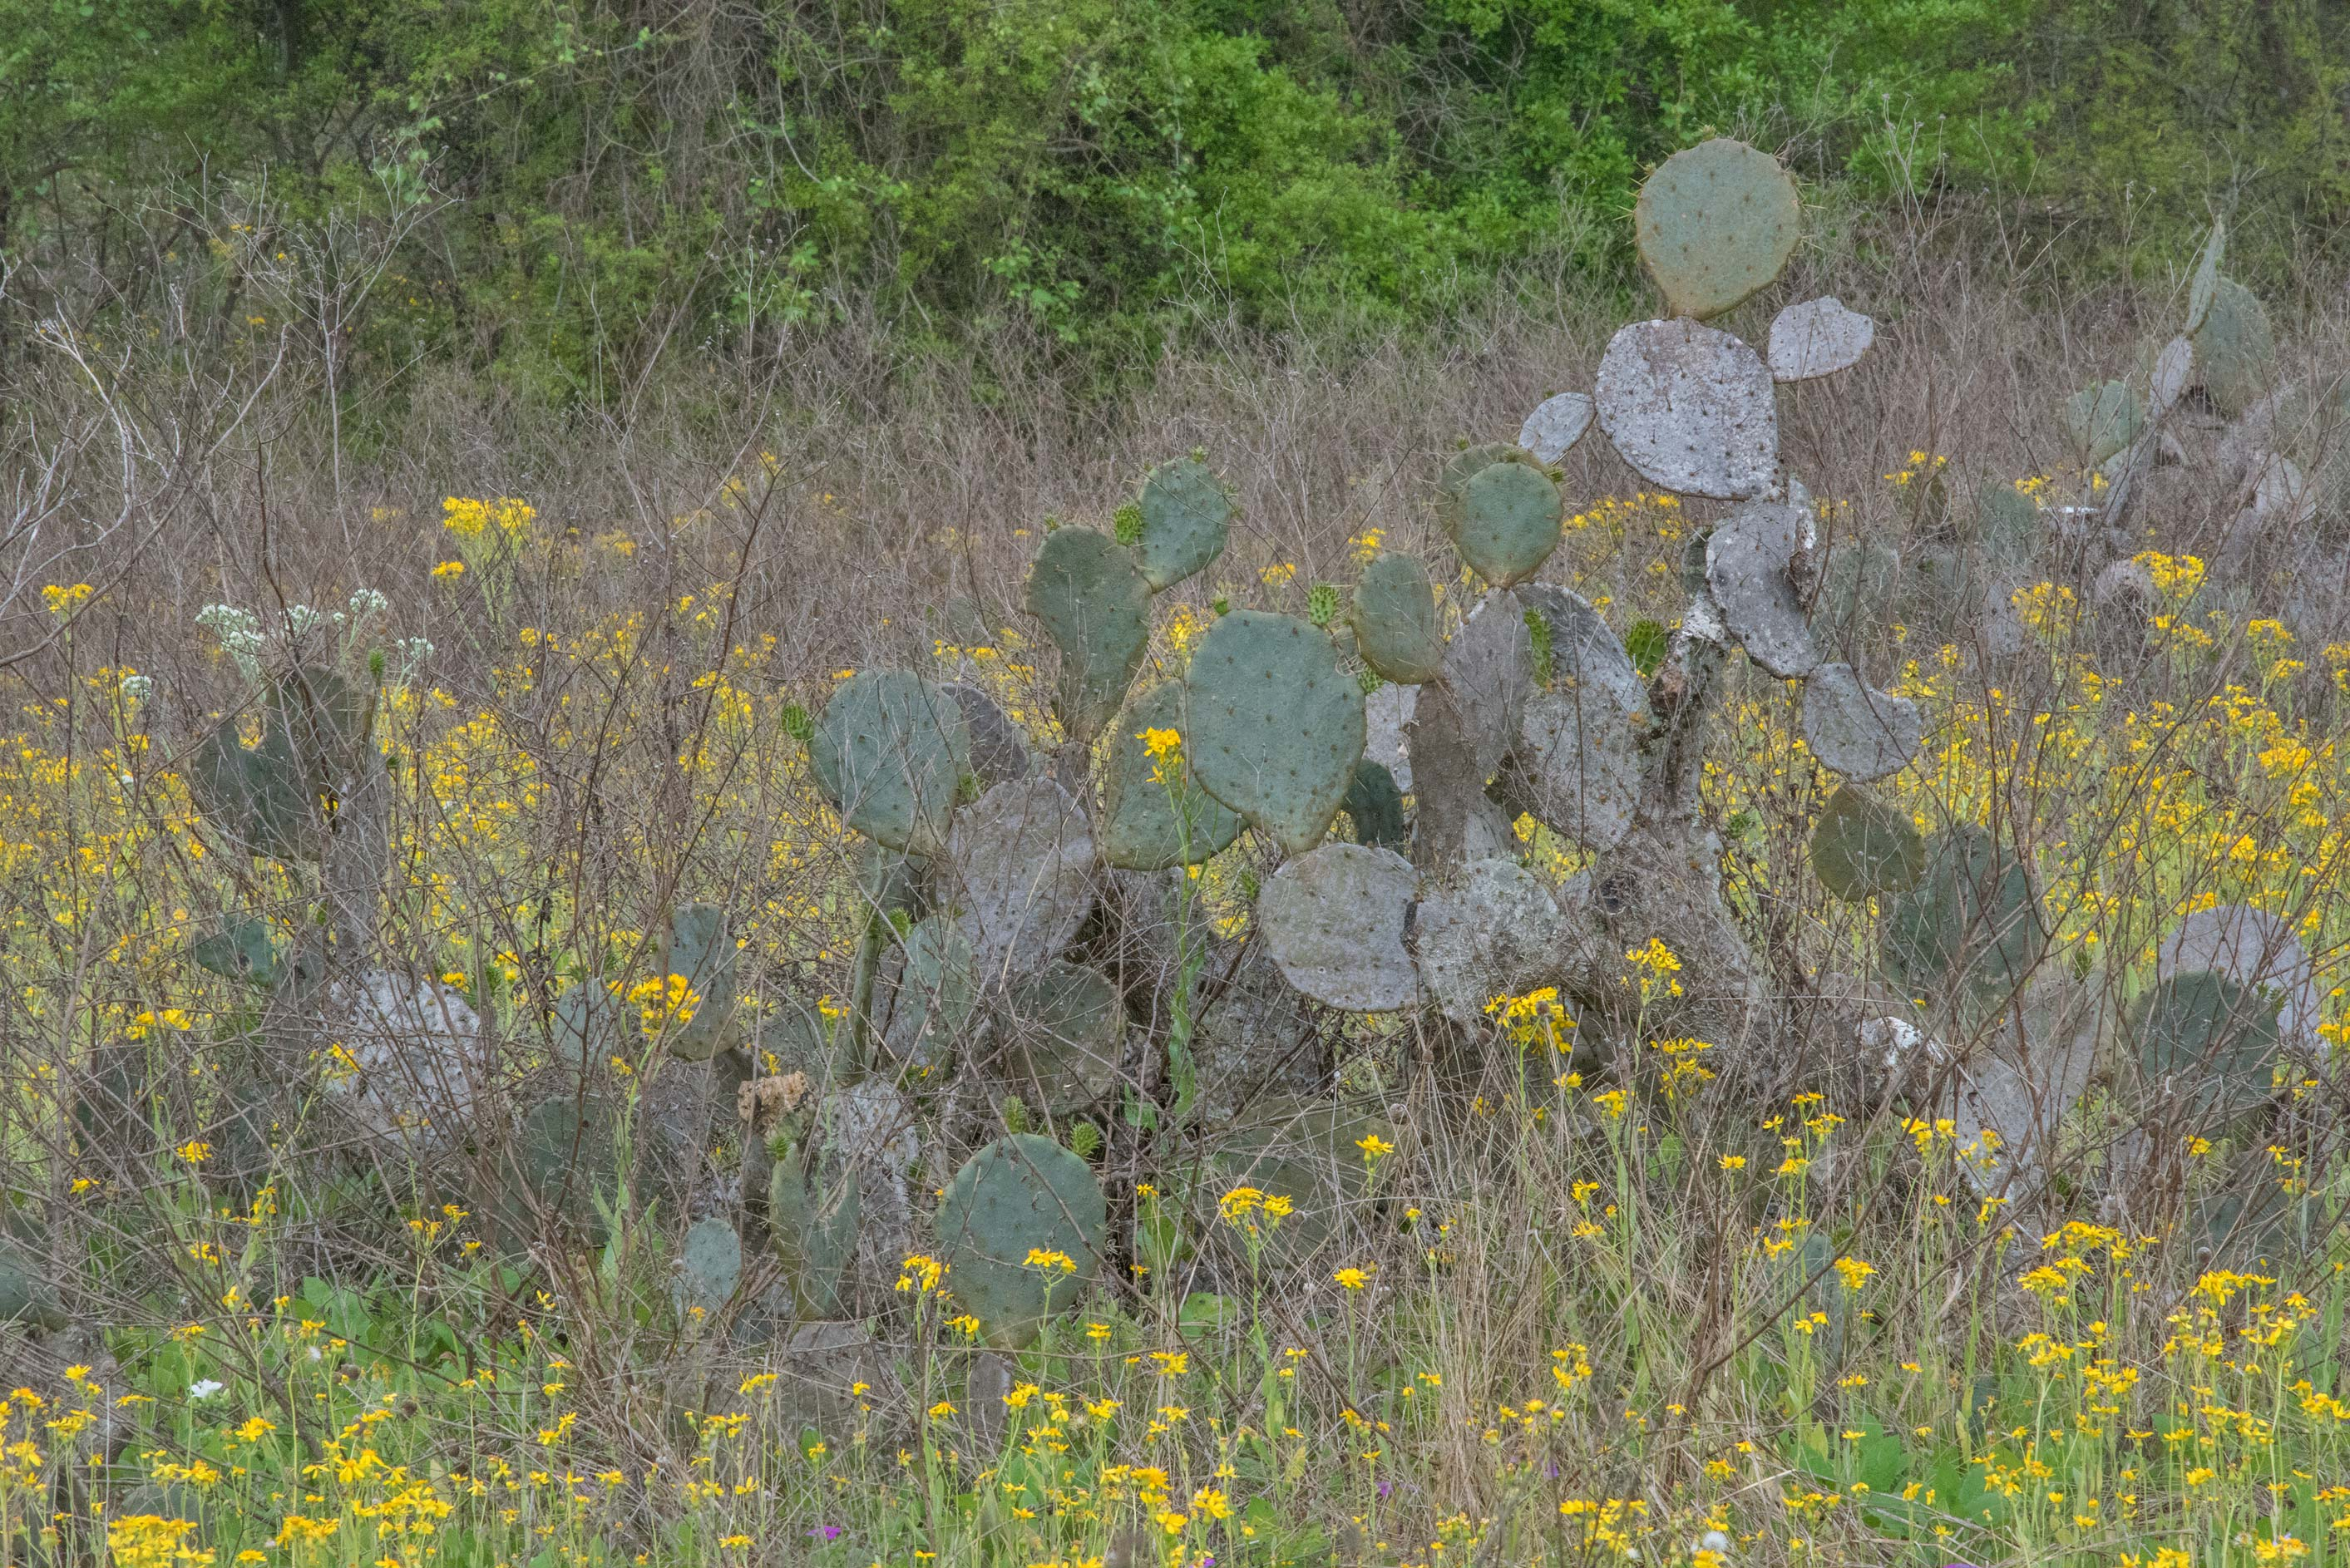 Prickly peas cactus (Opuntia) with yellow Senecio...State Historic Site. Washington, Texas